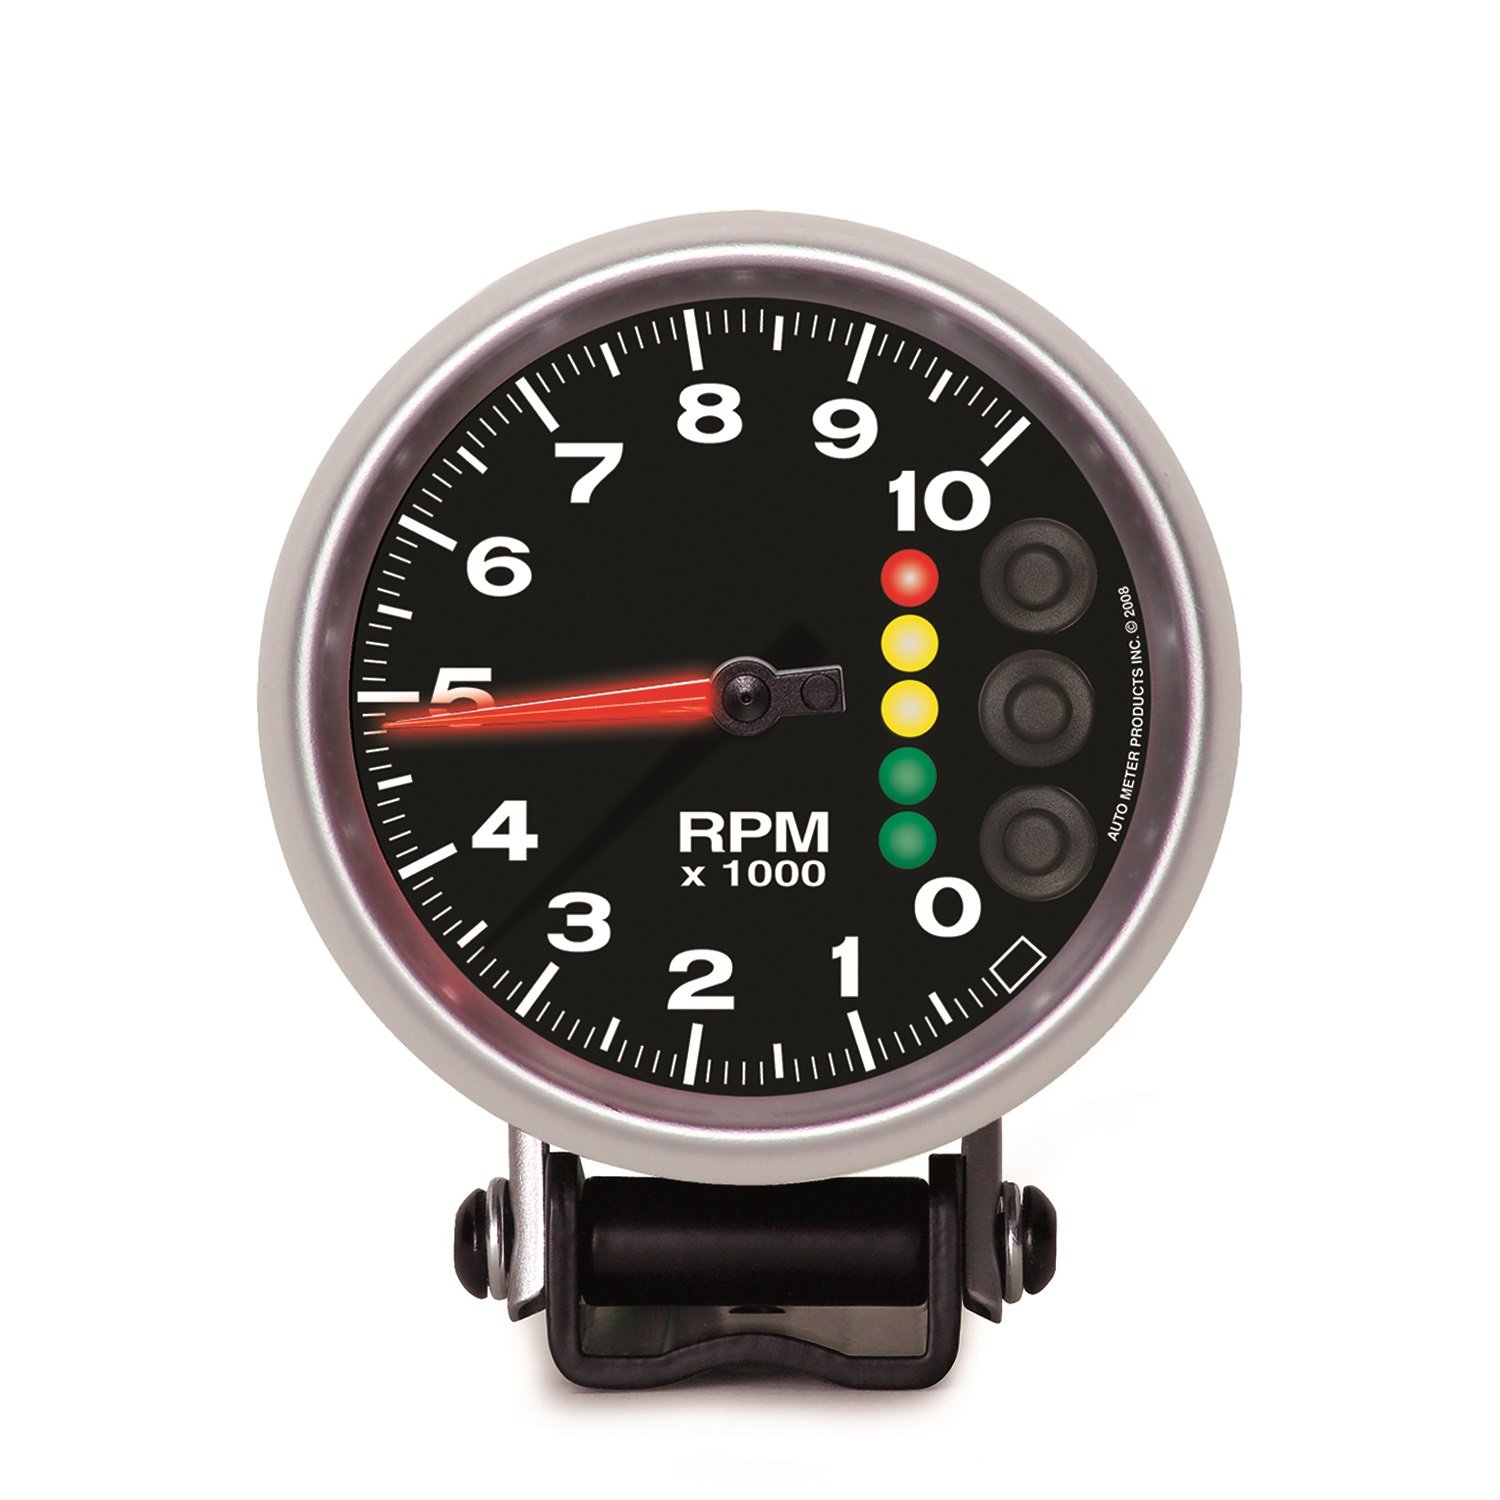 Auto Meter 6606-05705 Elite 3-3/4'' Electric Pedestal Tachometer (0-10,000 RPM, 95.3mm)